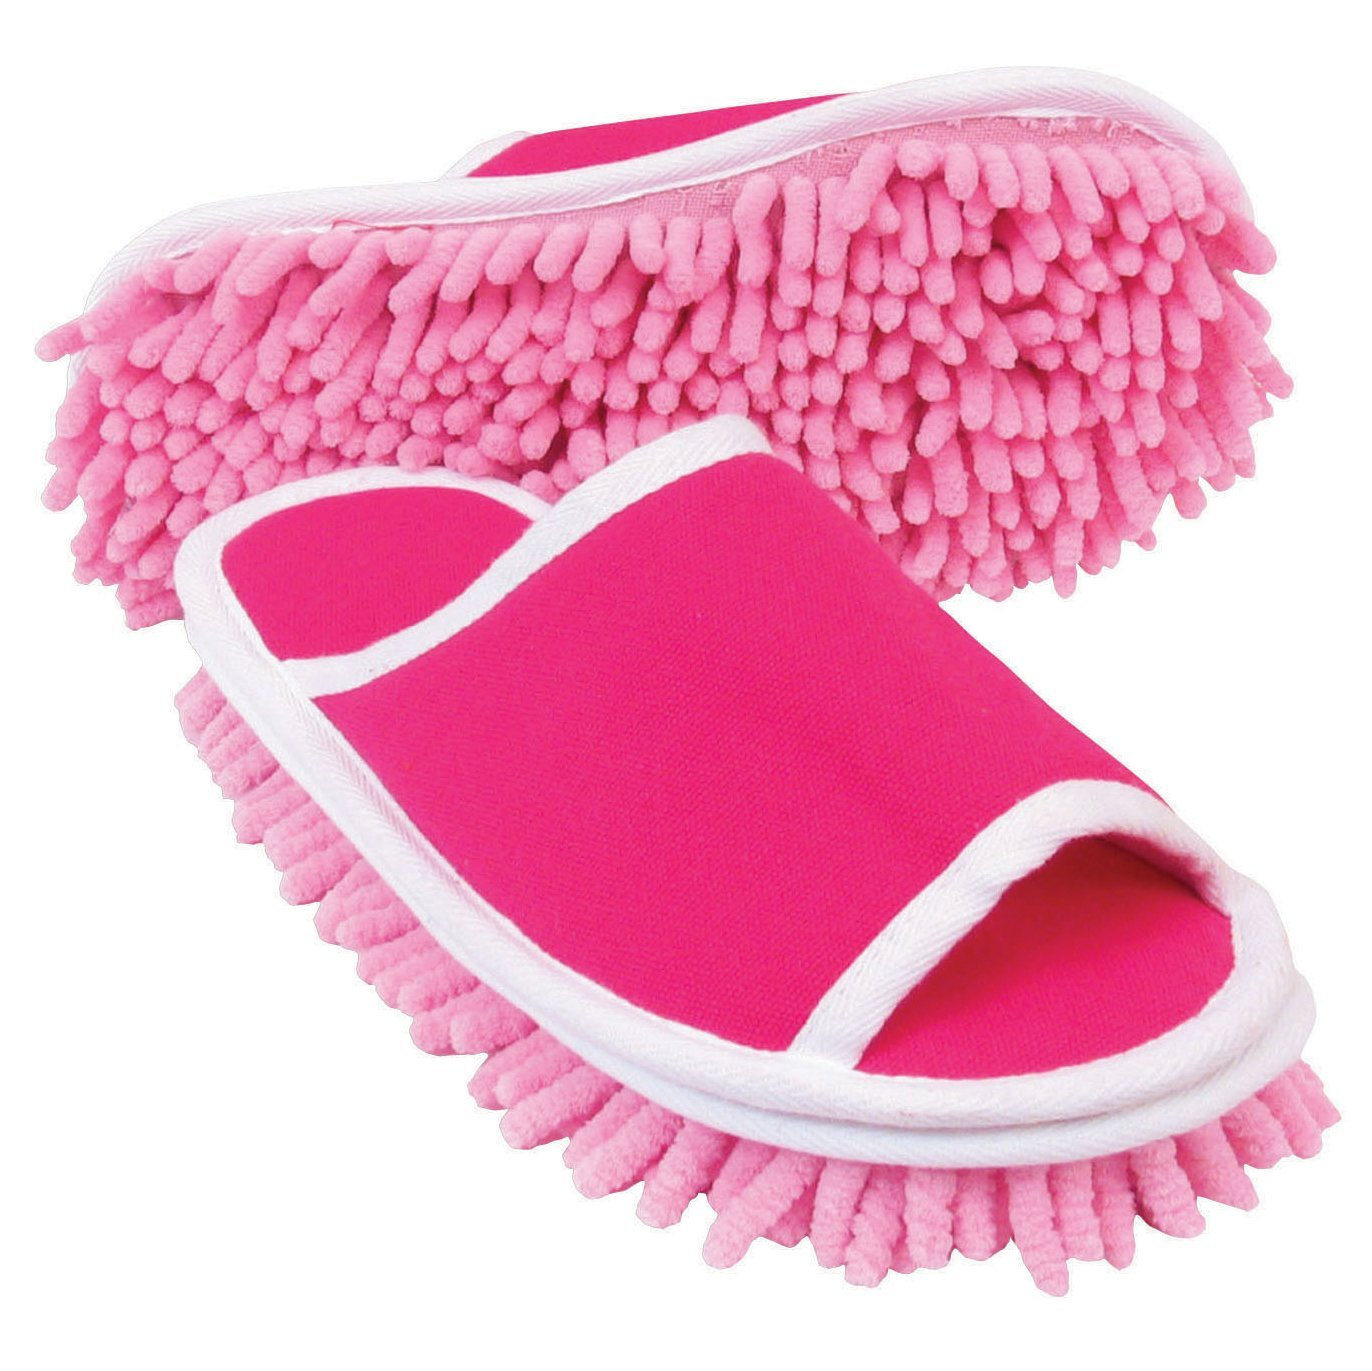 funny as seen on tv slipper dusters Slipper Genie Microfiber Cleaning Slippers, Pink